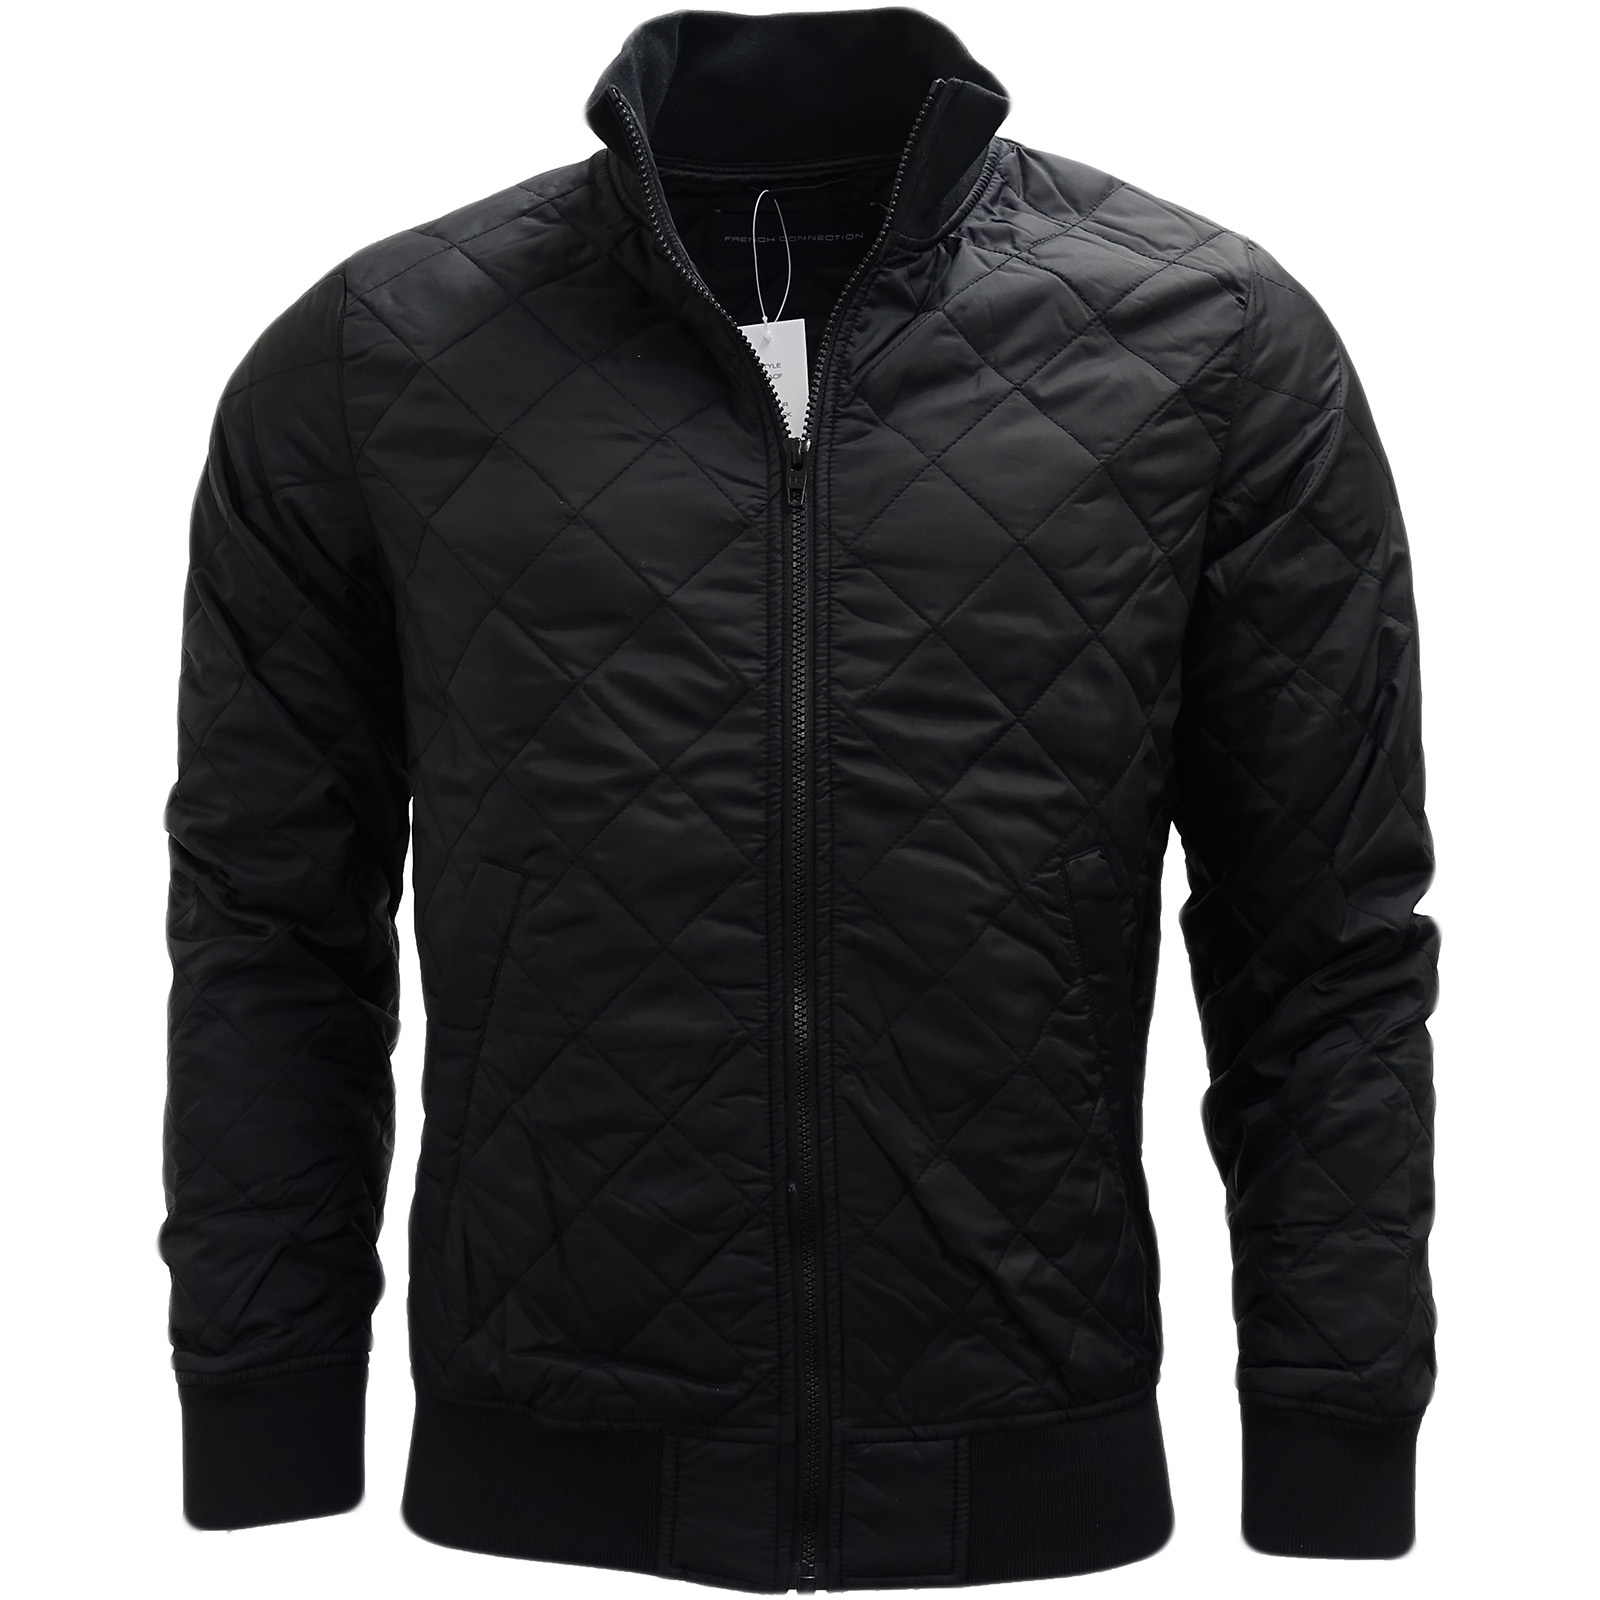 96ce26937ba Sentinel French Connection Black Lightweight Diamond Stitch Jacket / Outerwear  Coat - 55A